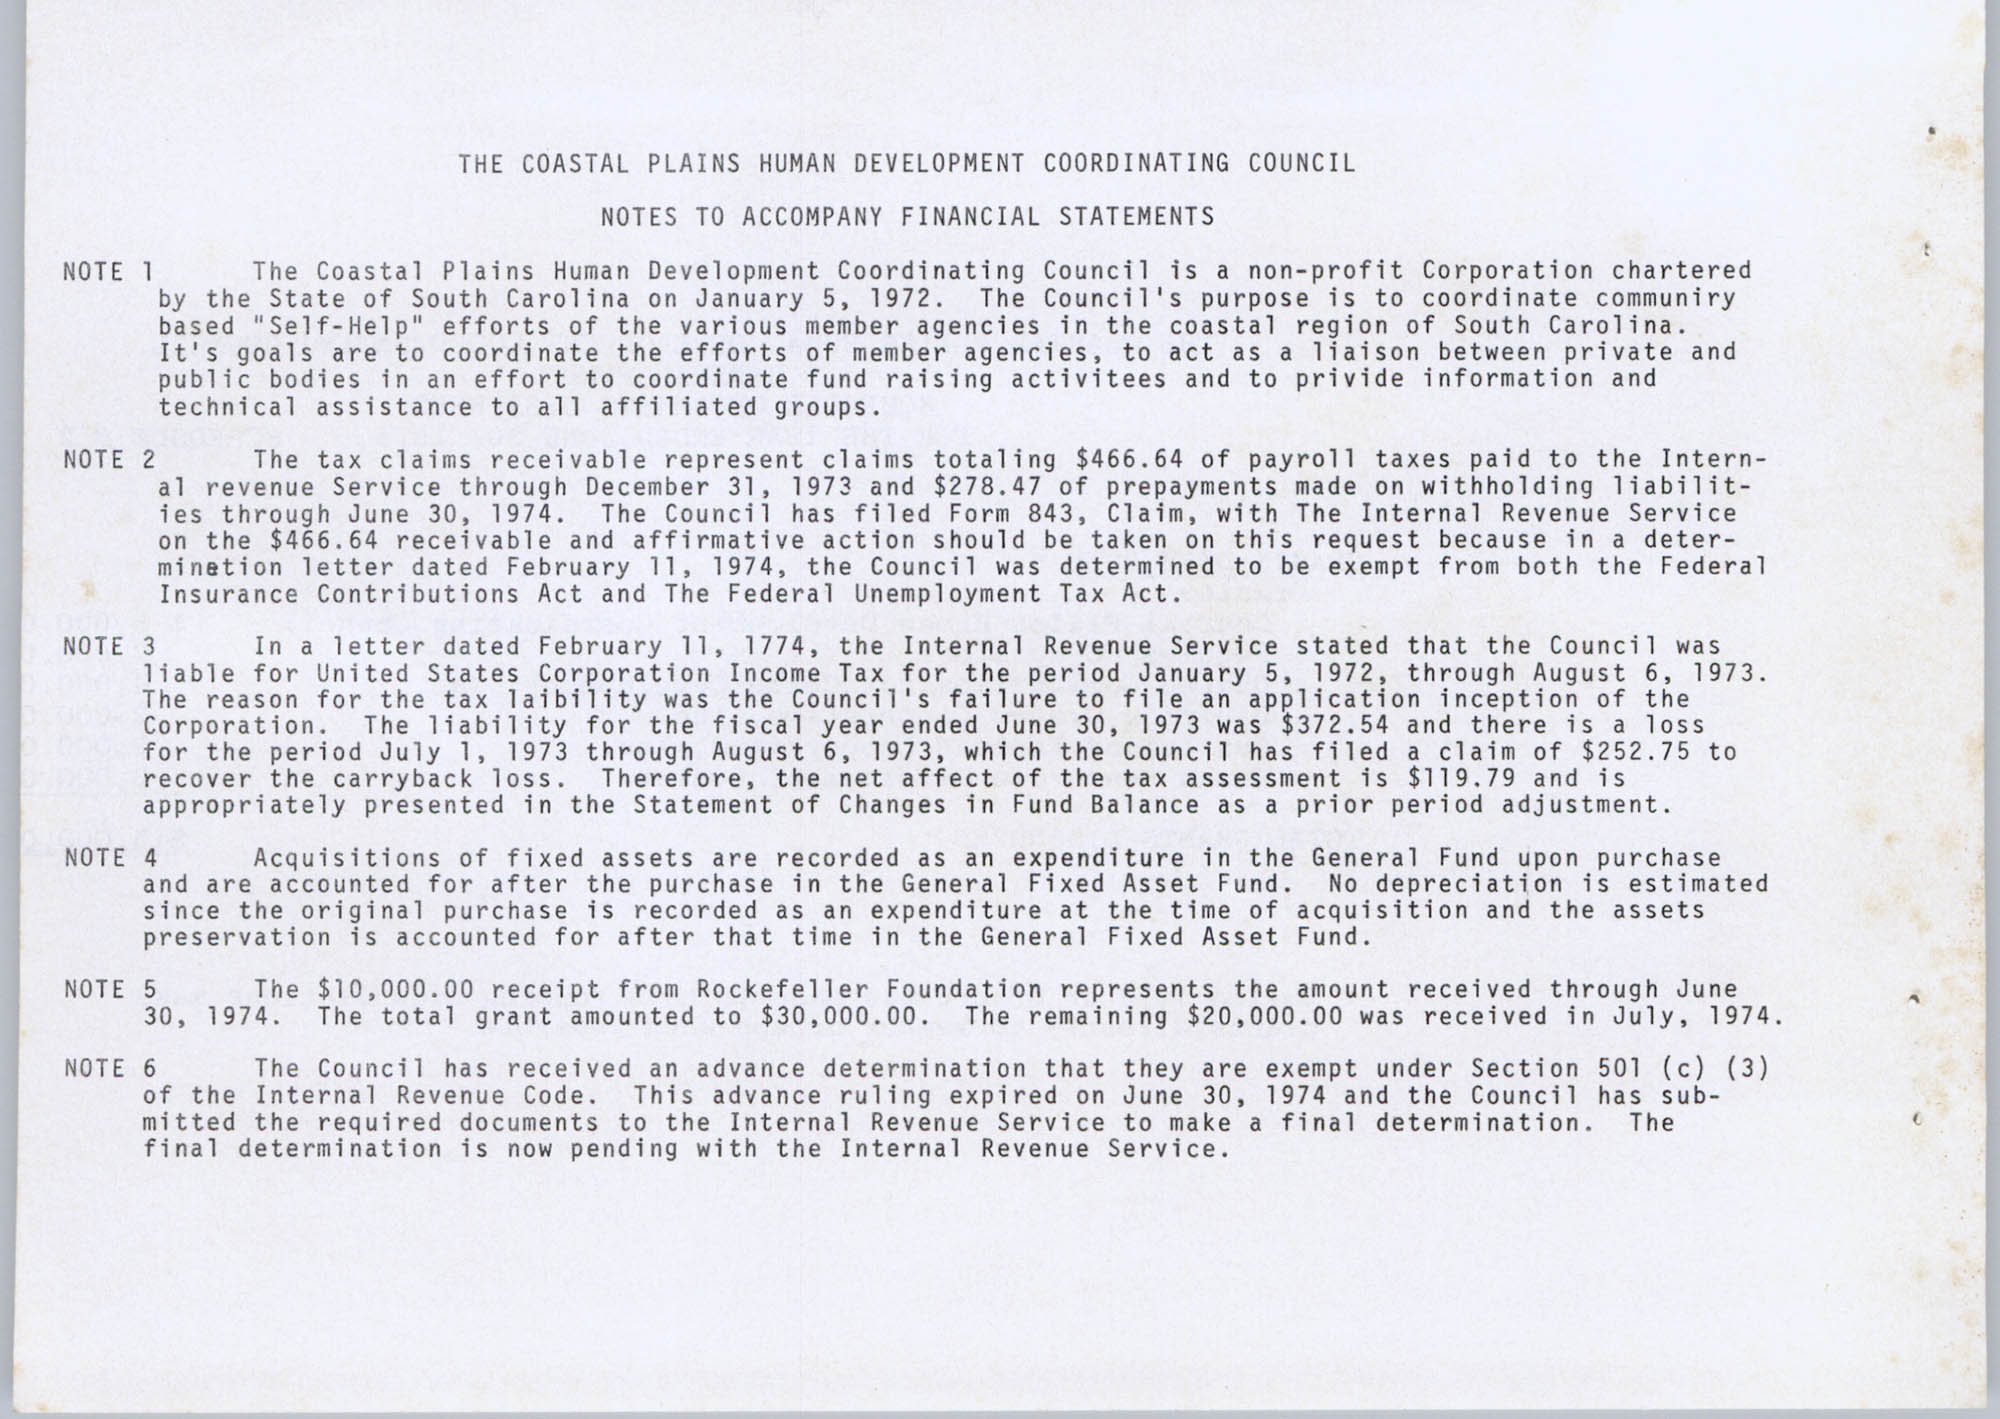 Coastal Plains Human Development Coordinating Council, 1974 Annual Report, Page 22